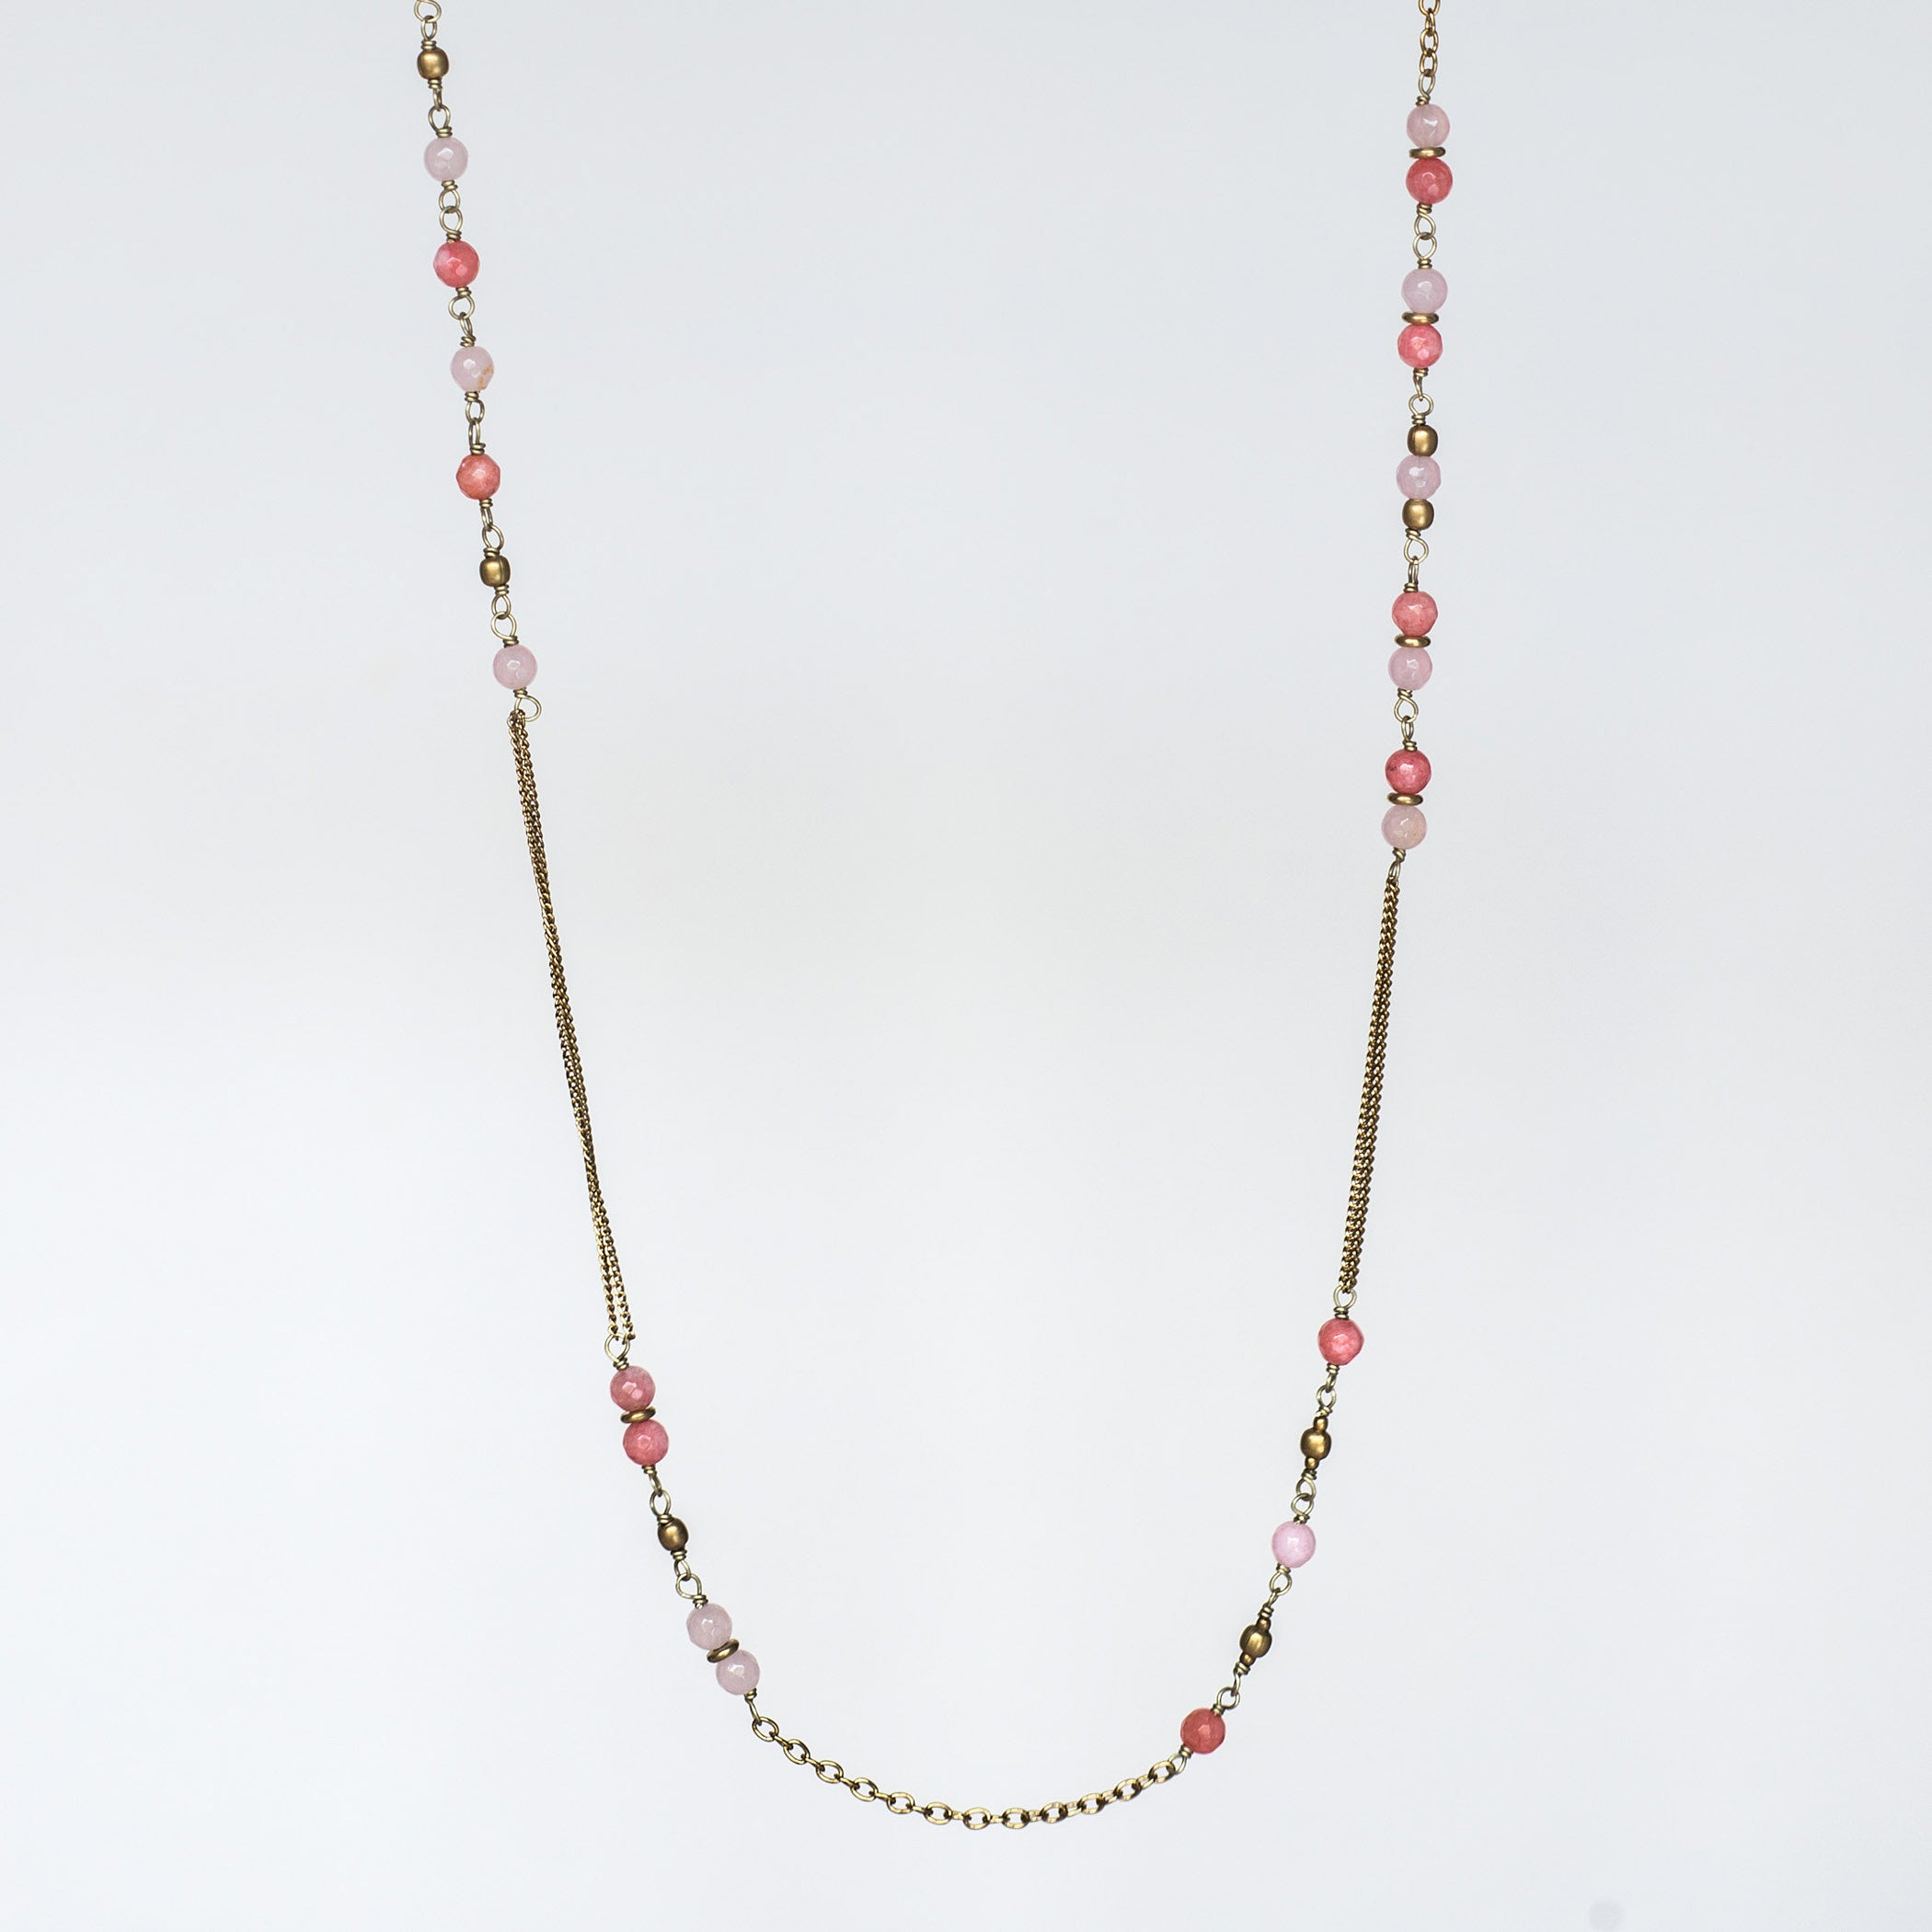 necklace product and dignity strength pink rose shop riot salt